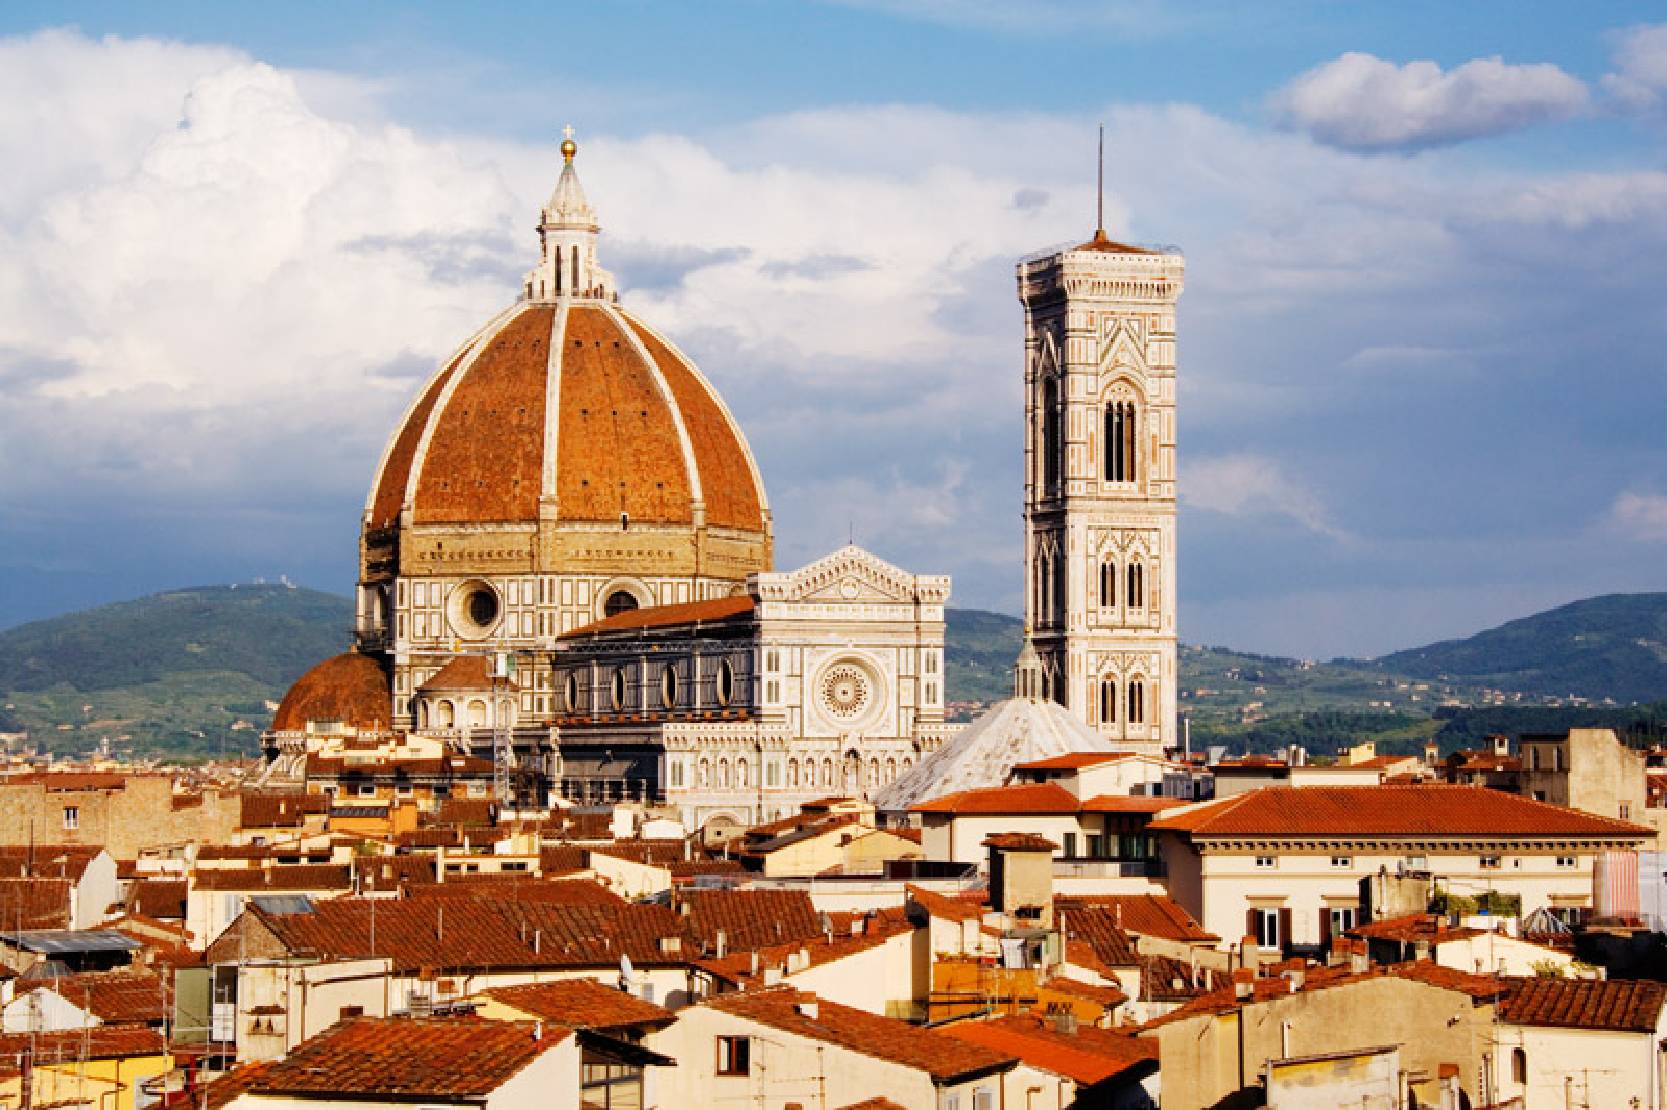 duomo florence photo tour jeremy woodhouse